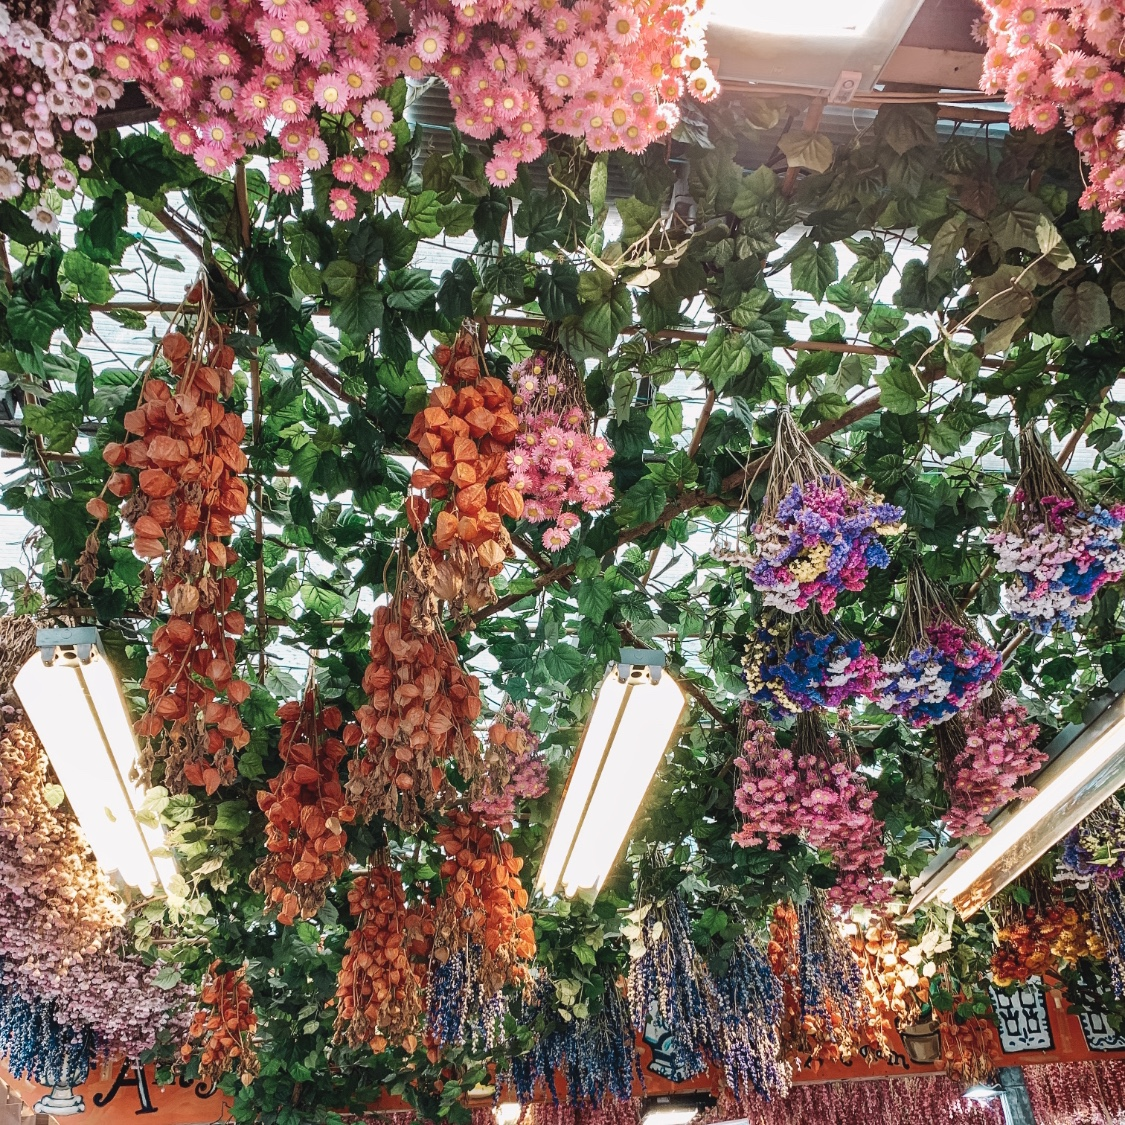 Things to do in Amsterdam - go to the floating flower market